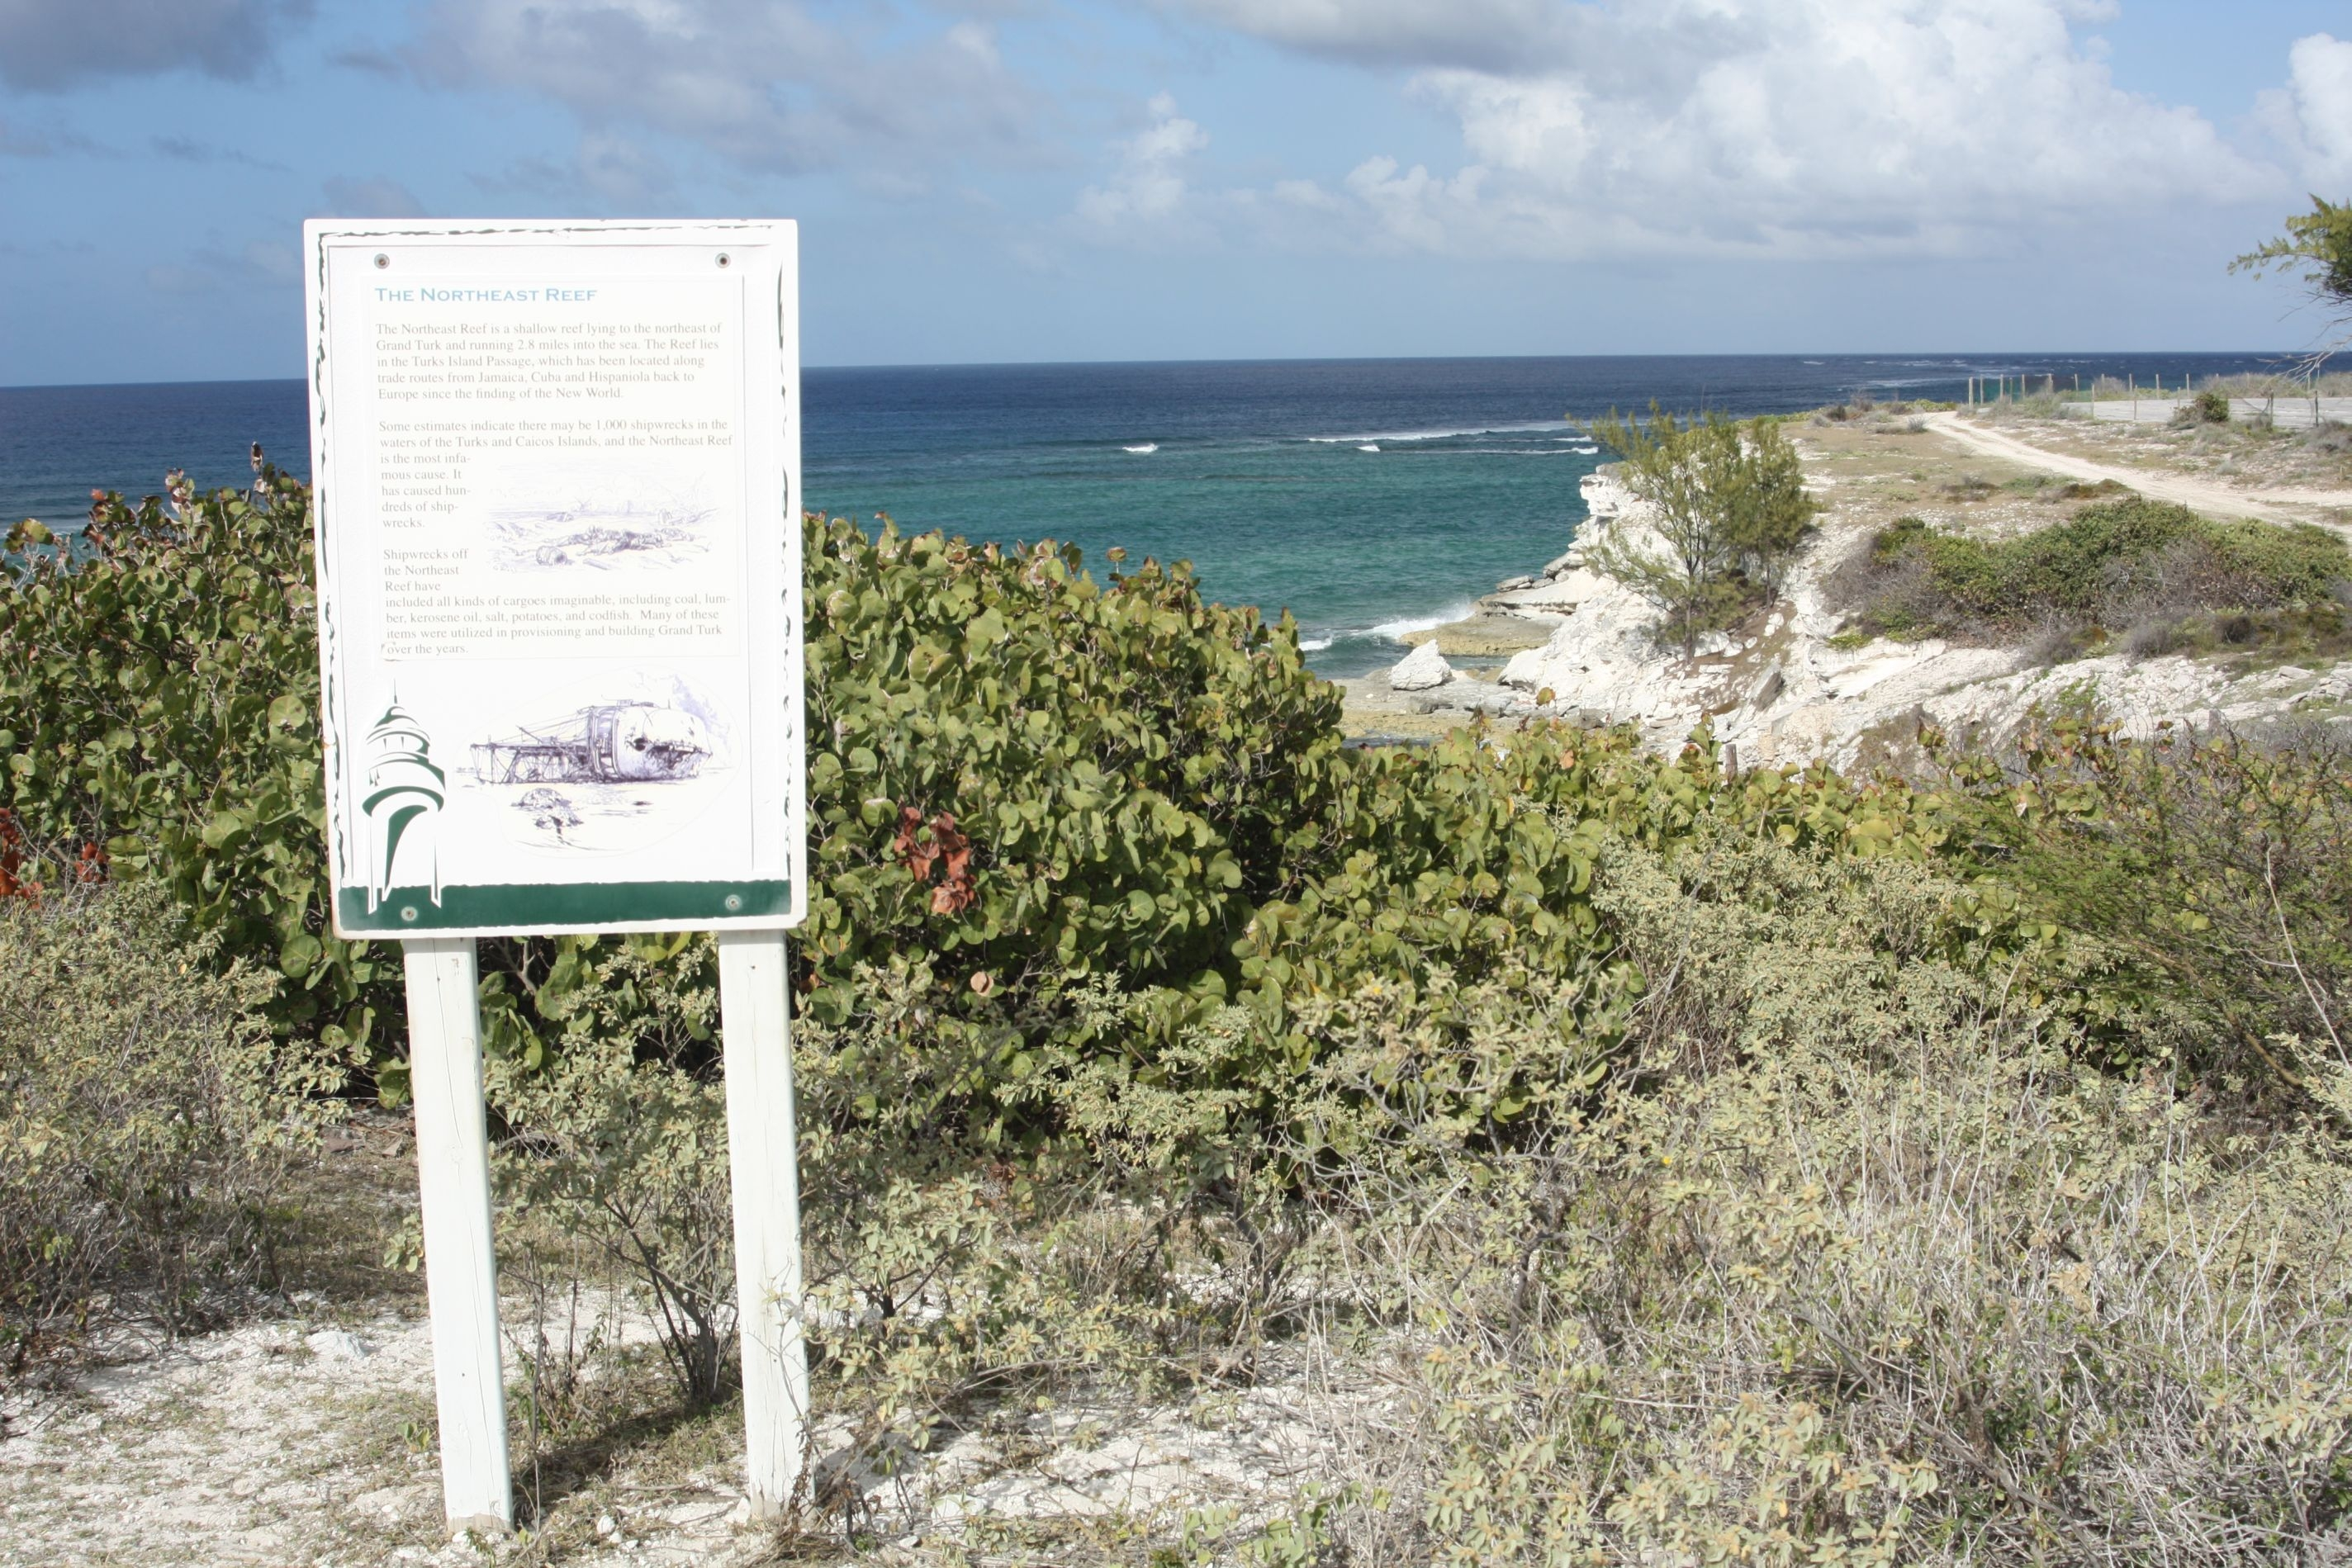 The Northeast Reef Marker